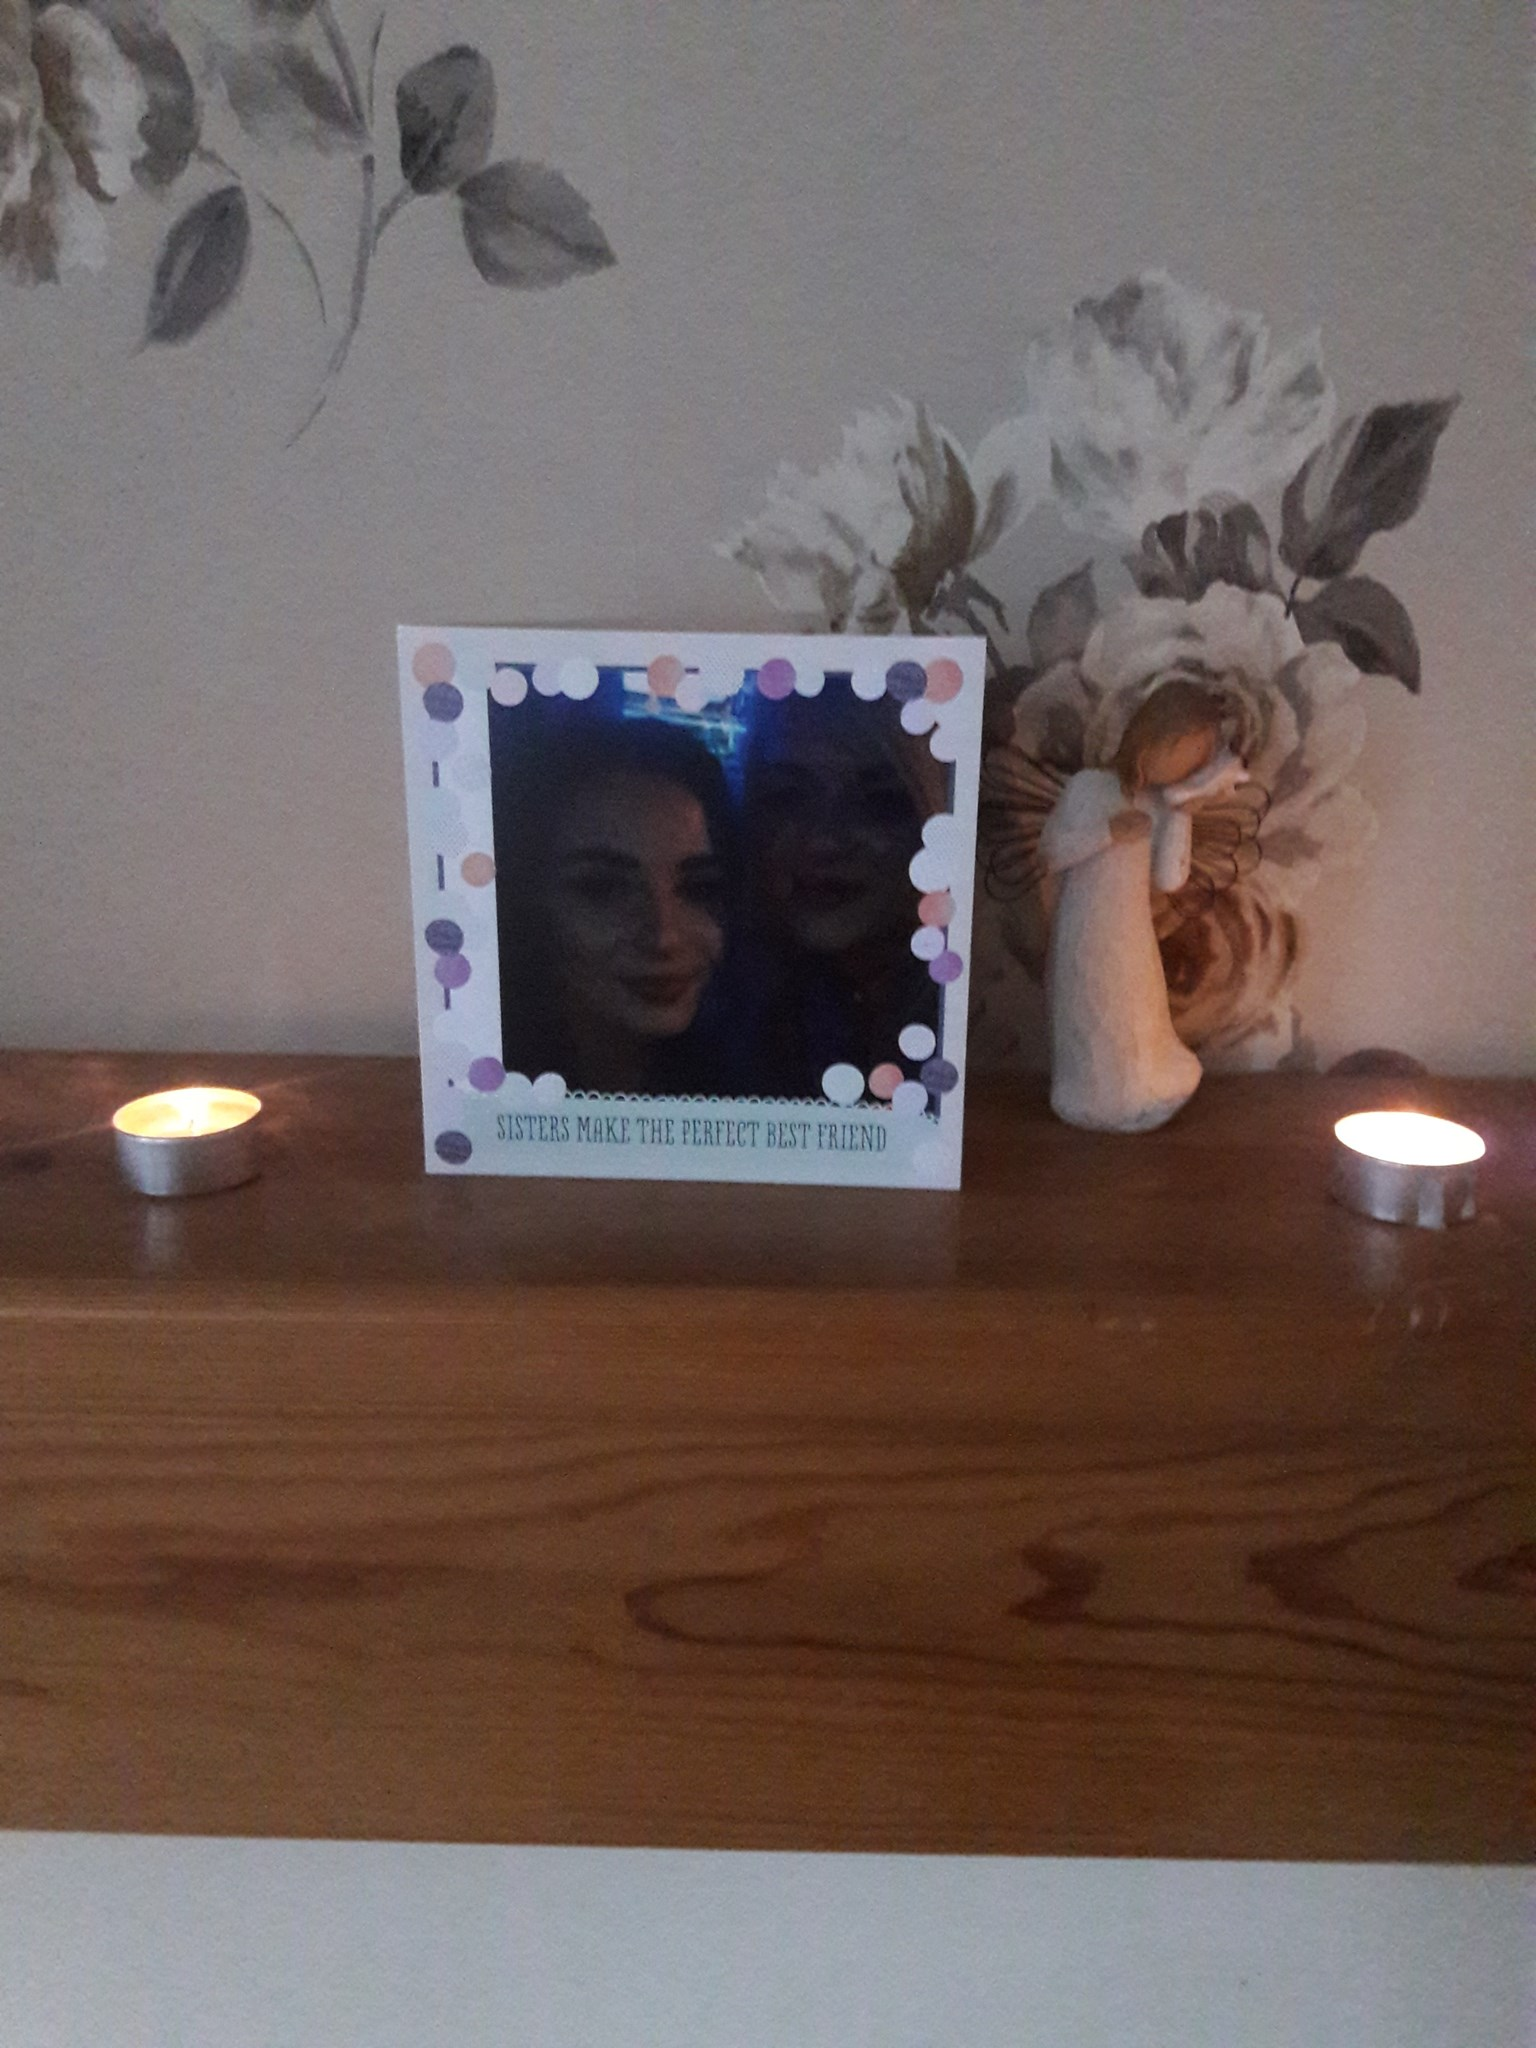 Sisters make the perfect best friend. A candle lit for you and Mackean on your birthdays xxx